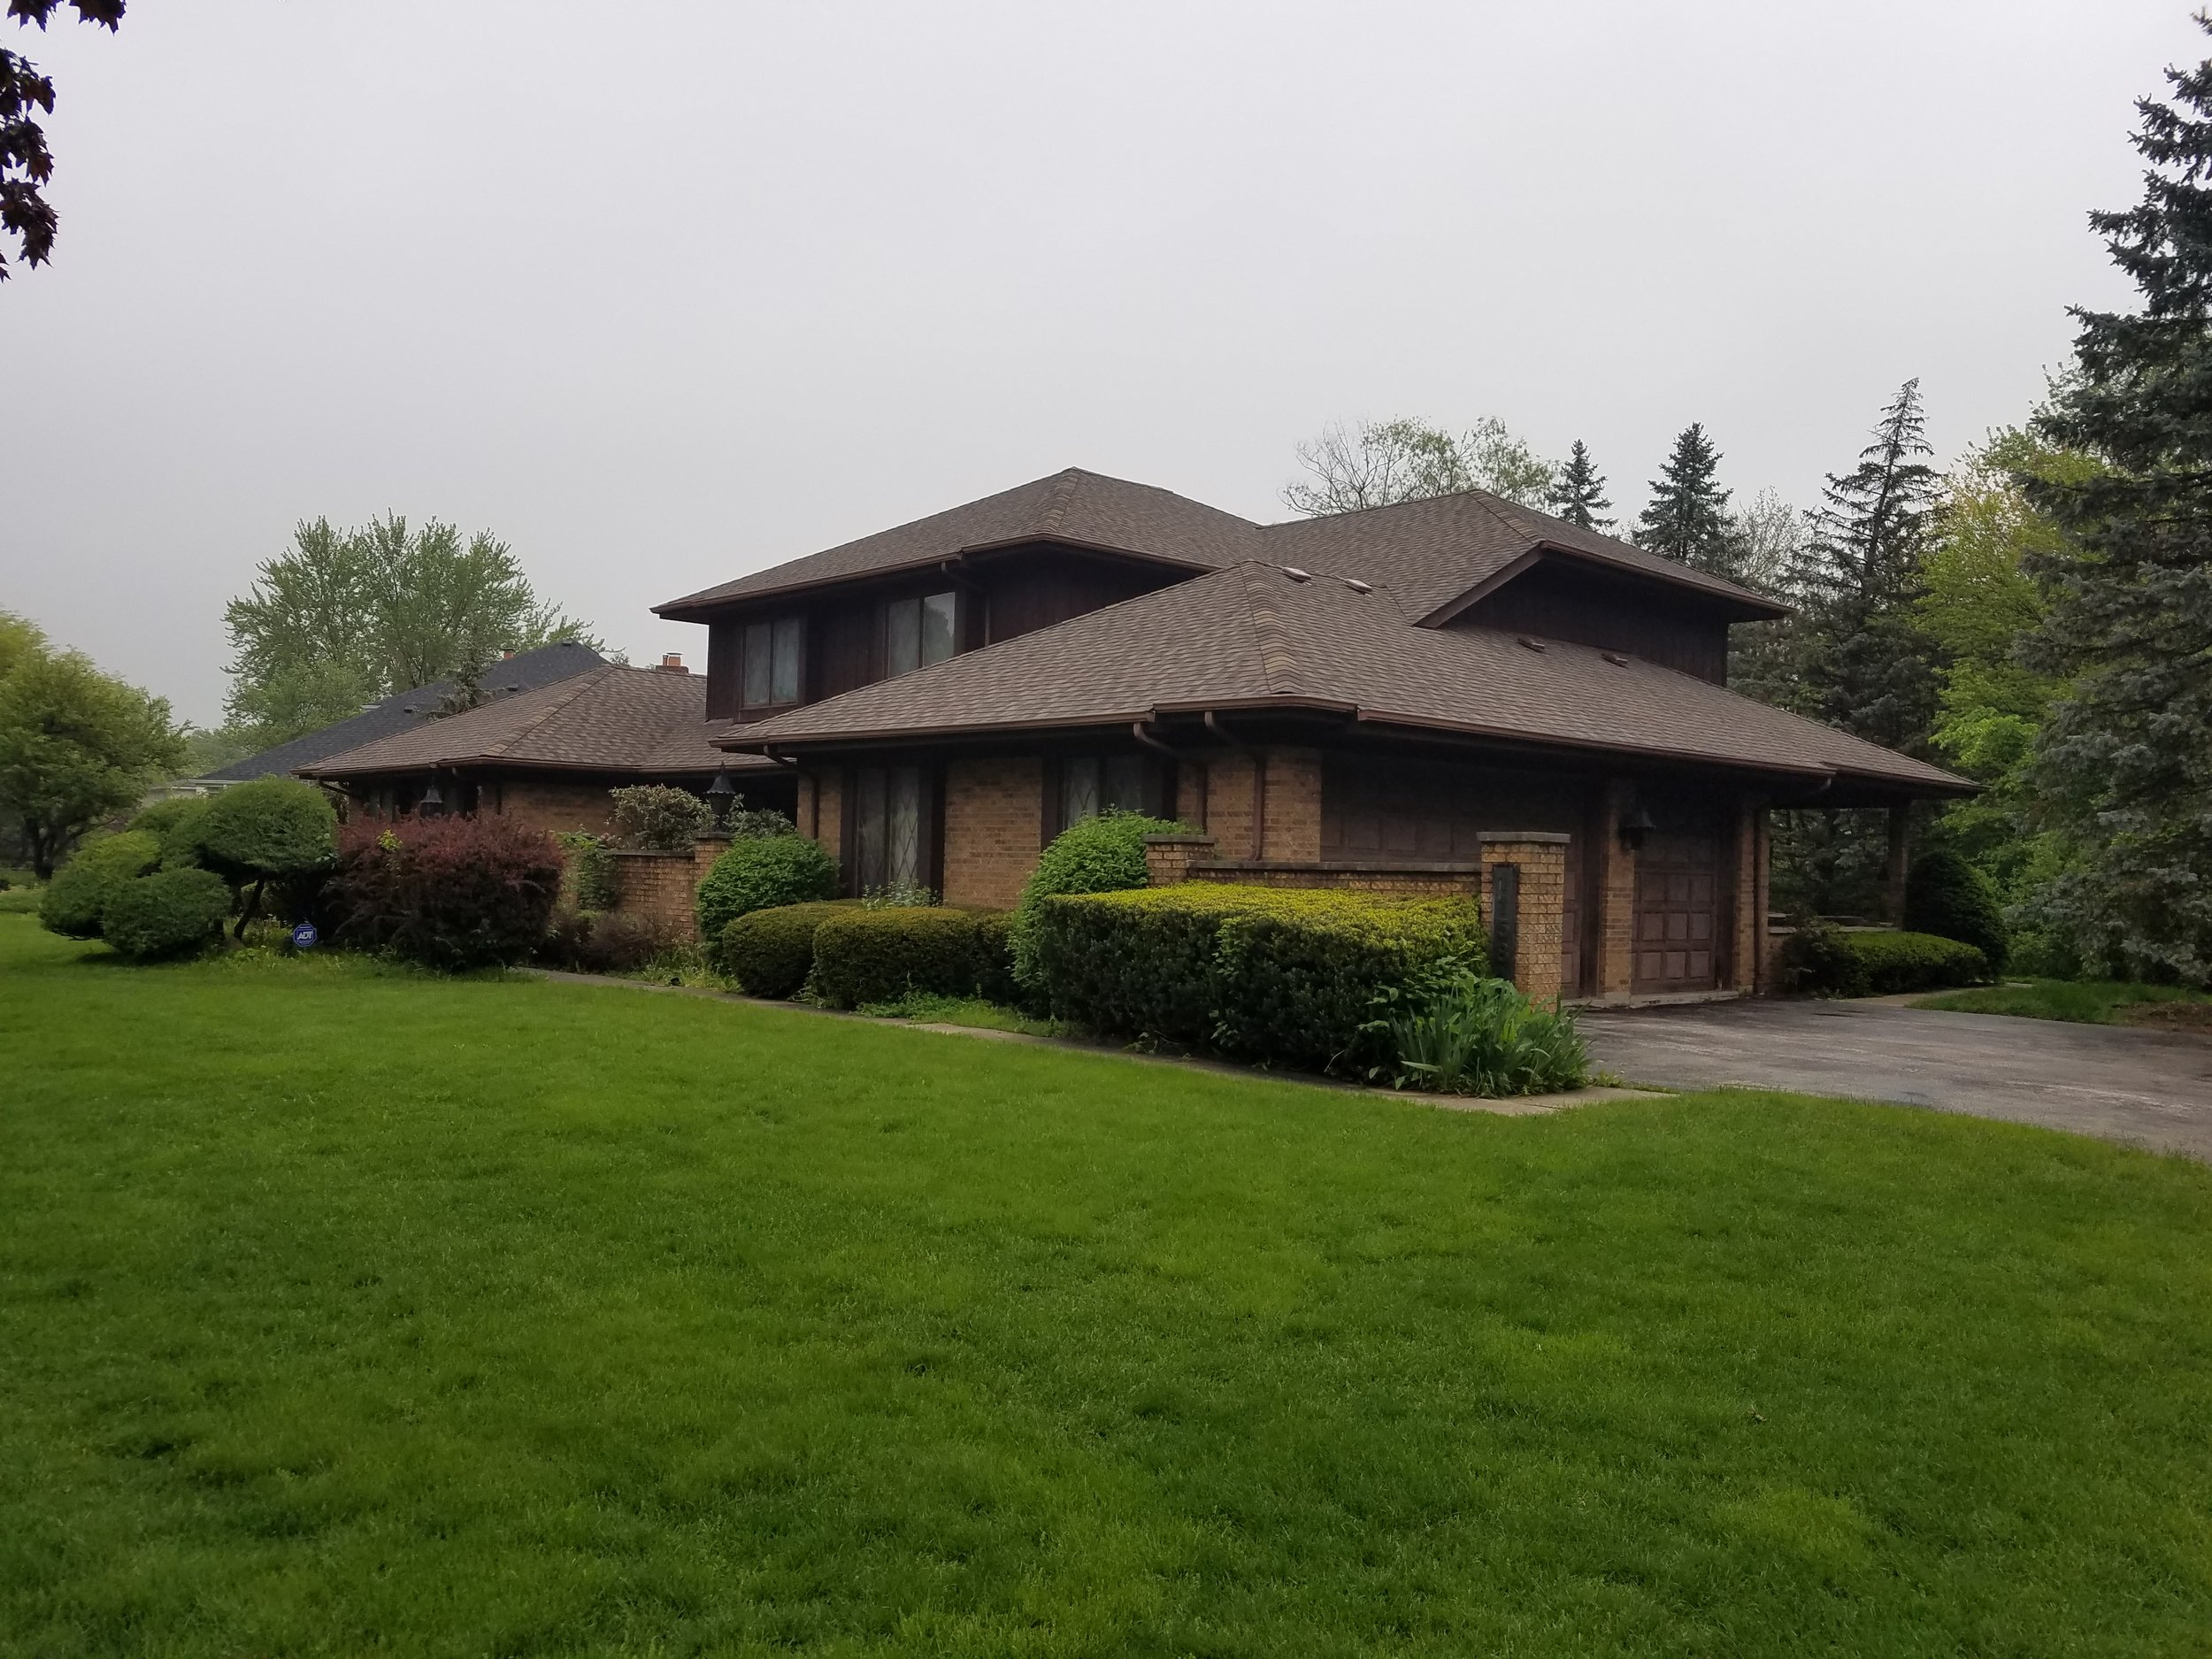 Feze Roofing - After Photo - Project Location: Burr Ridge, IL